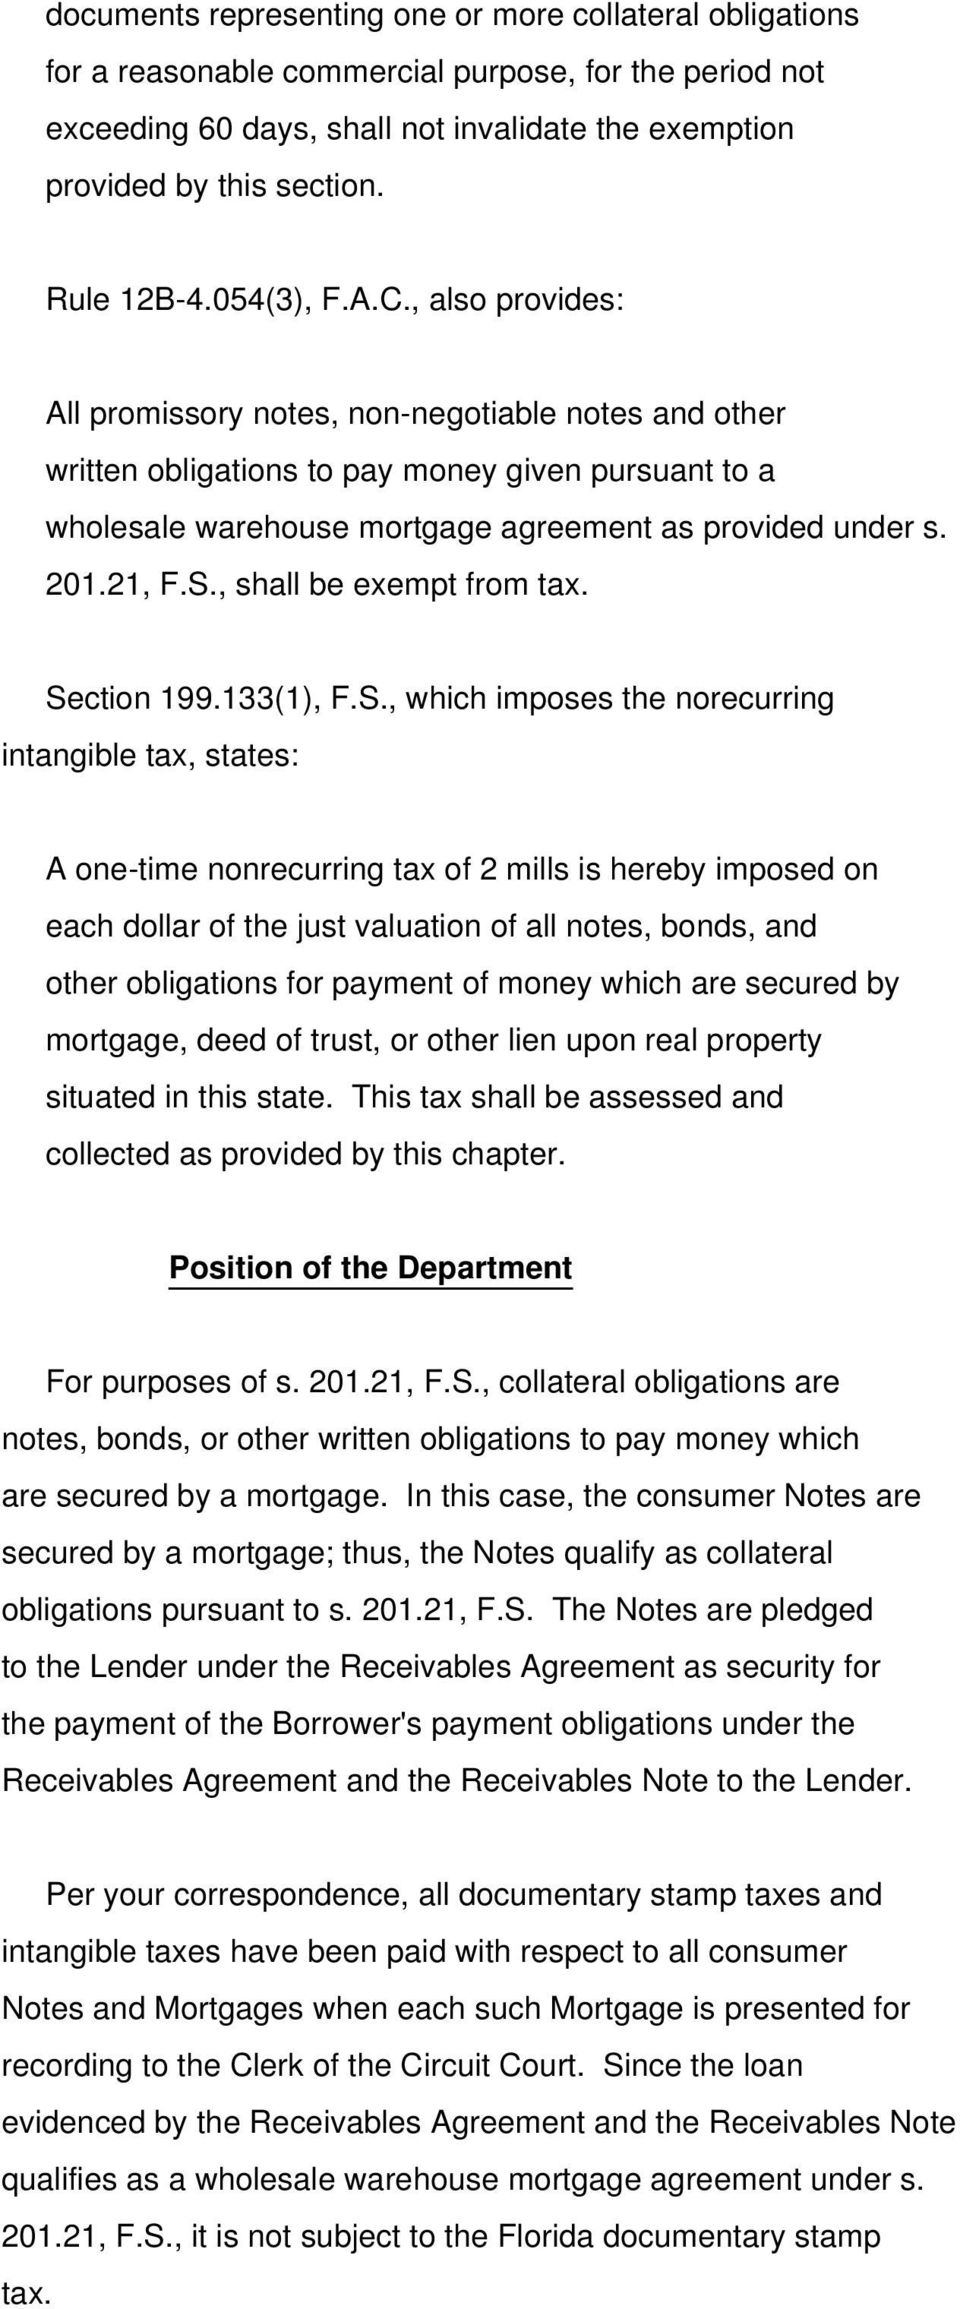 , also provides: All promissory notes, non-negotiable notes and other written obligations to pay money given pursuant to a wholesale warehouse mortgage agreement as provided under s. 201.21, F.S.